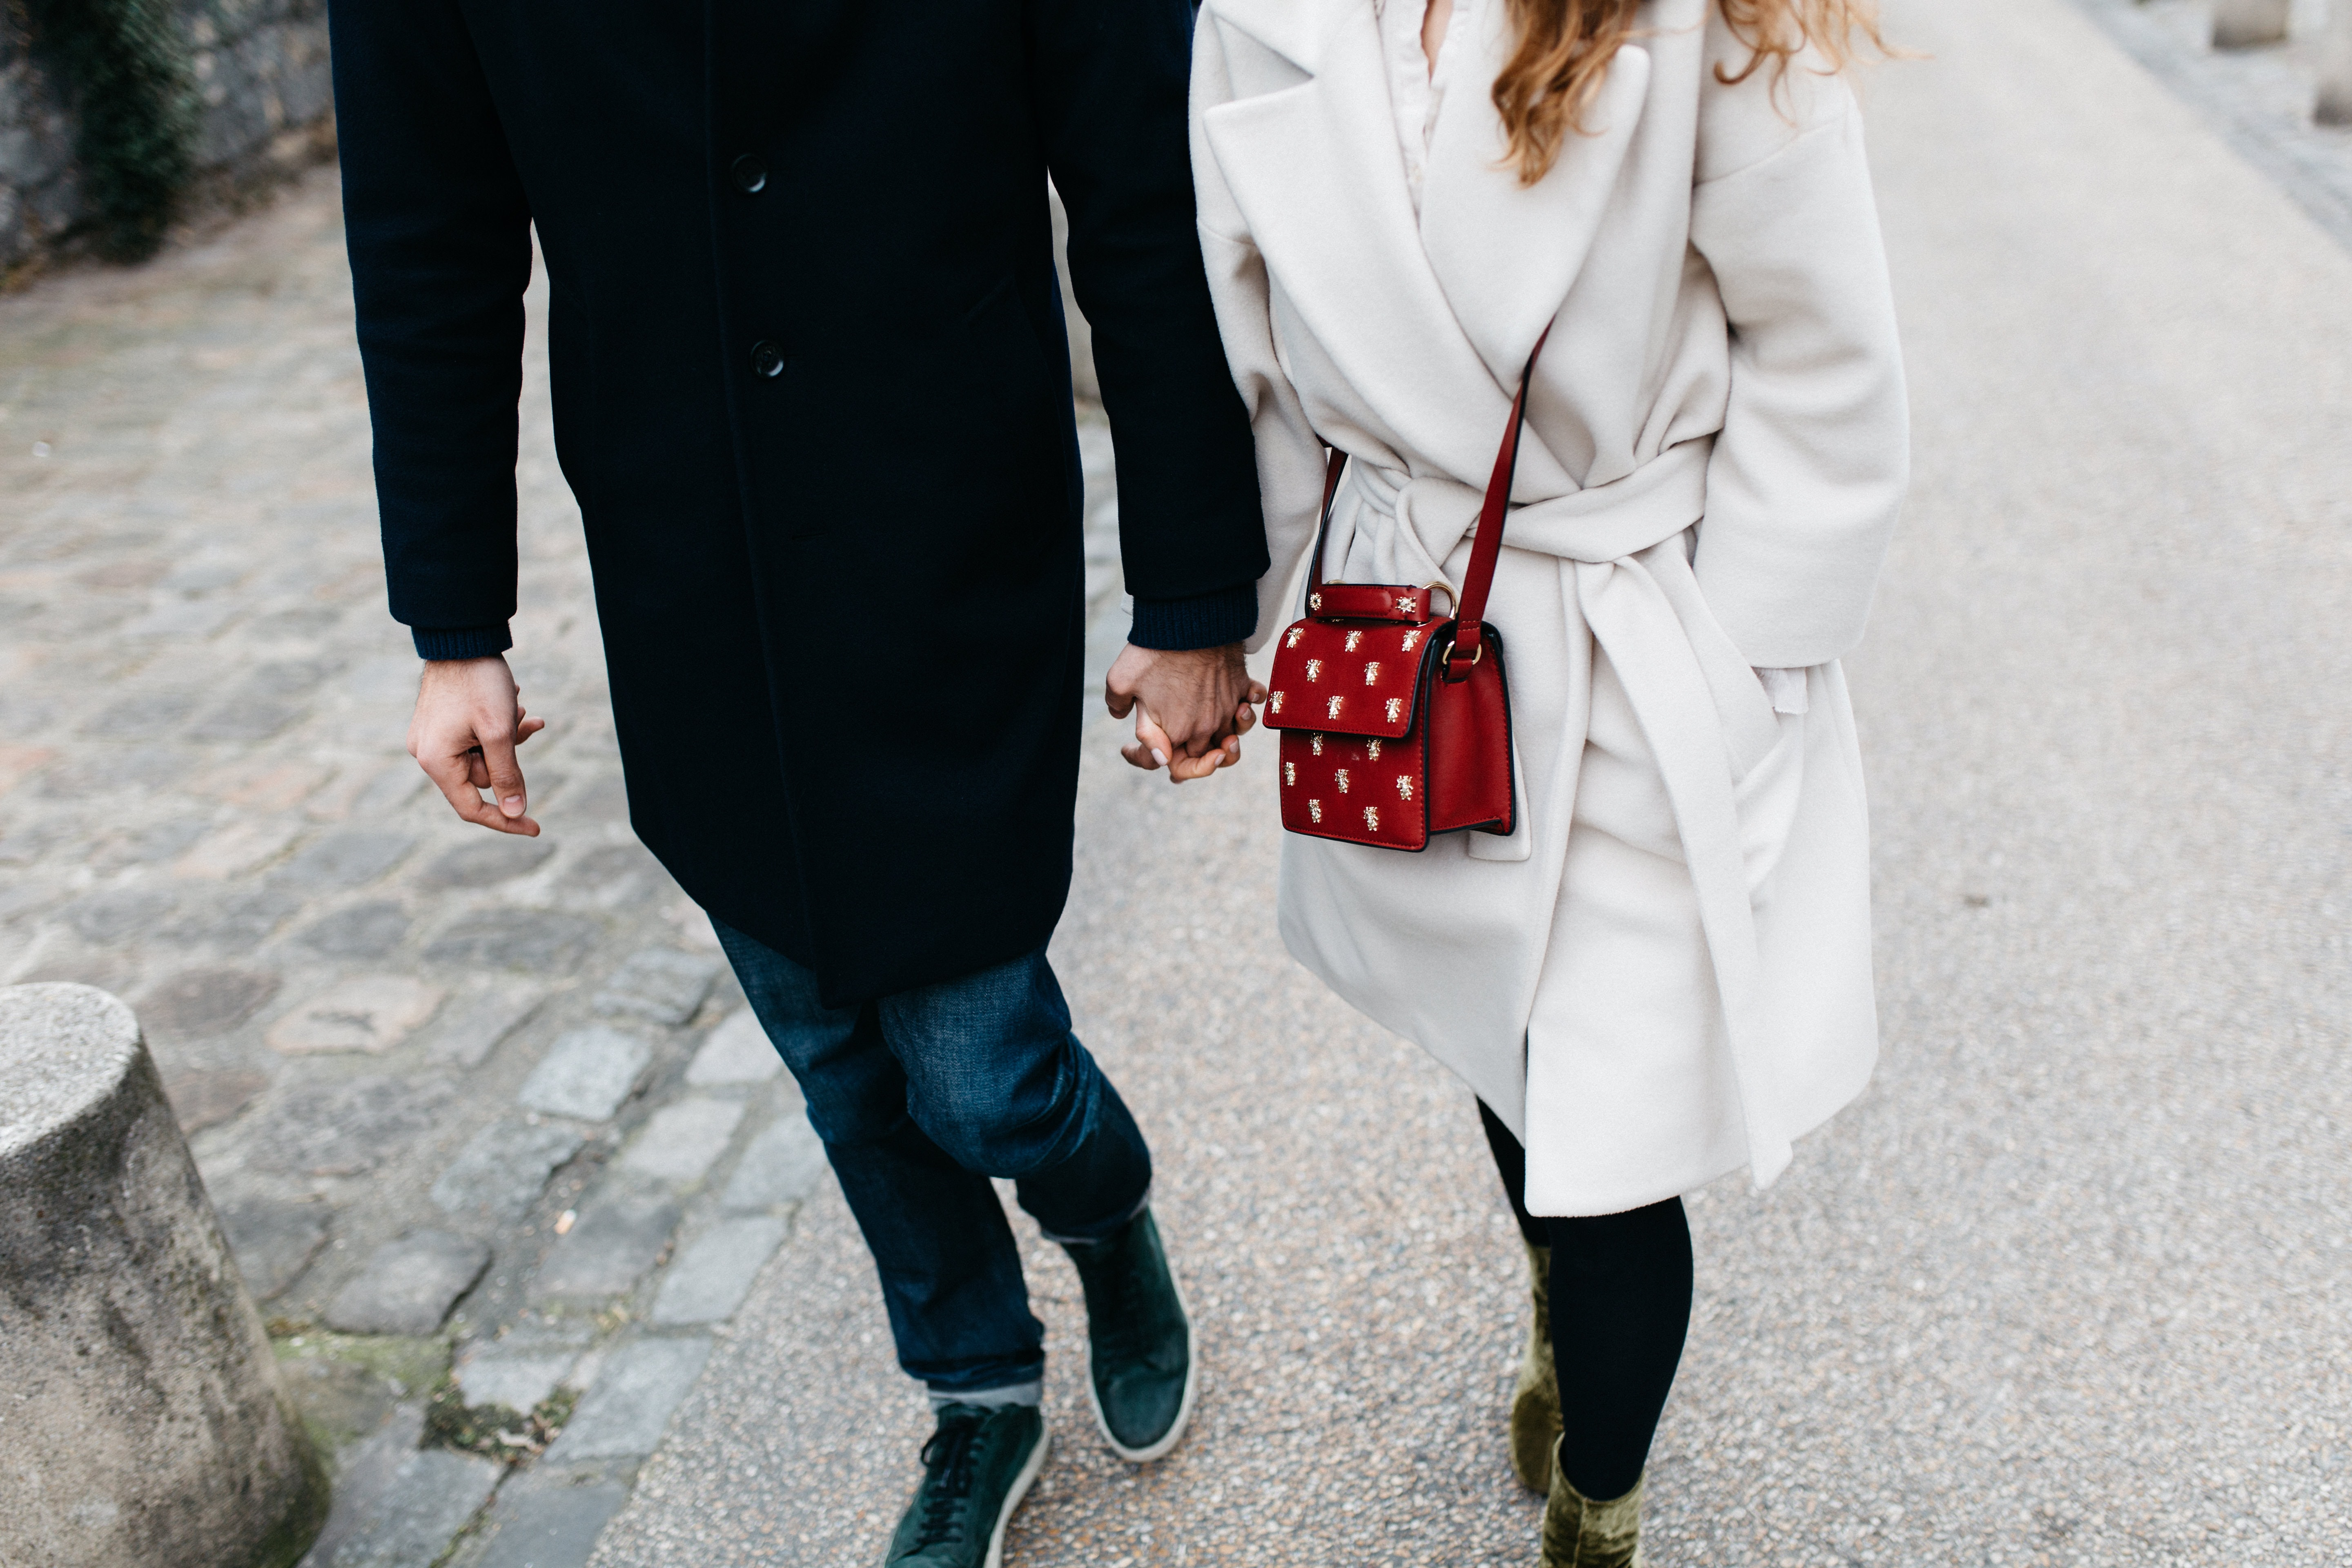 A fashionable couple holding hands while walking on the street.